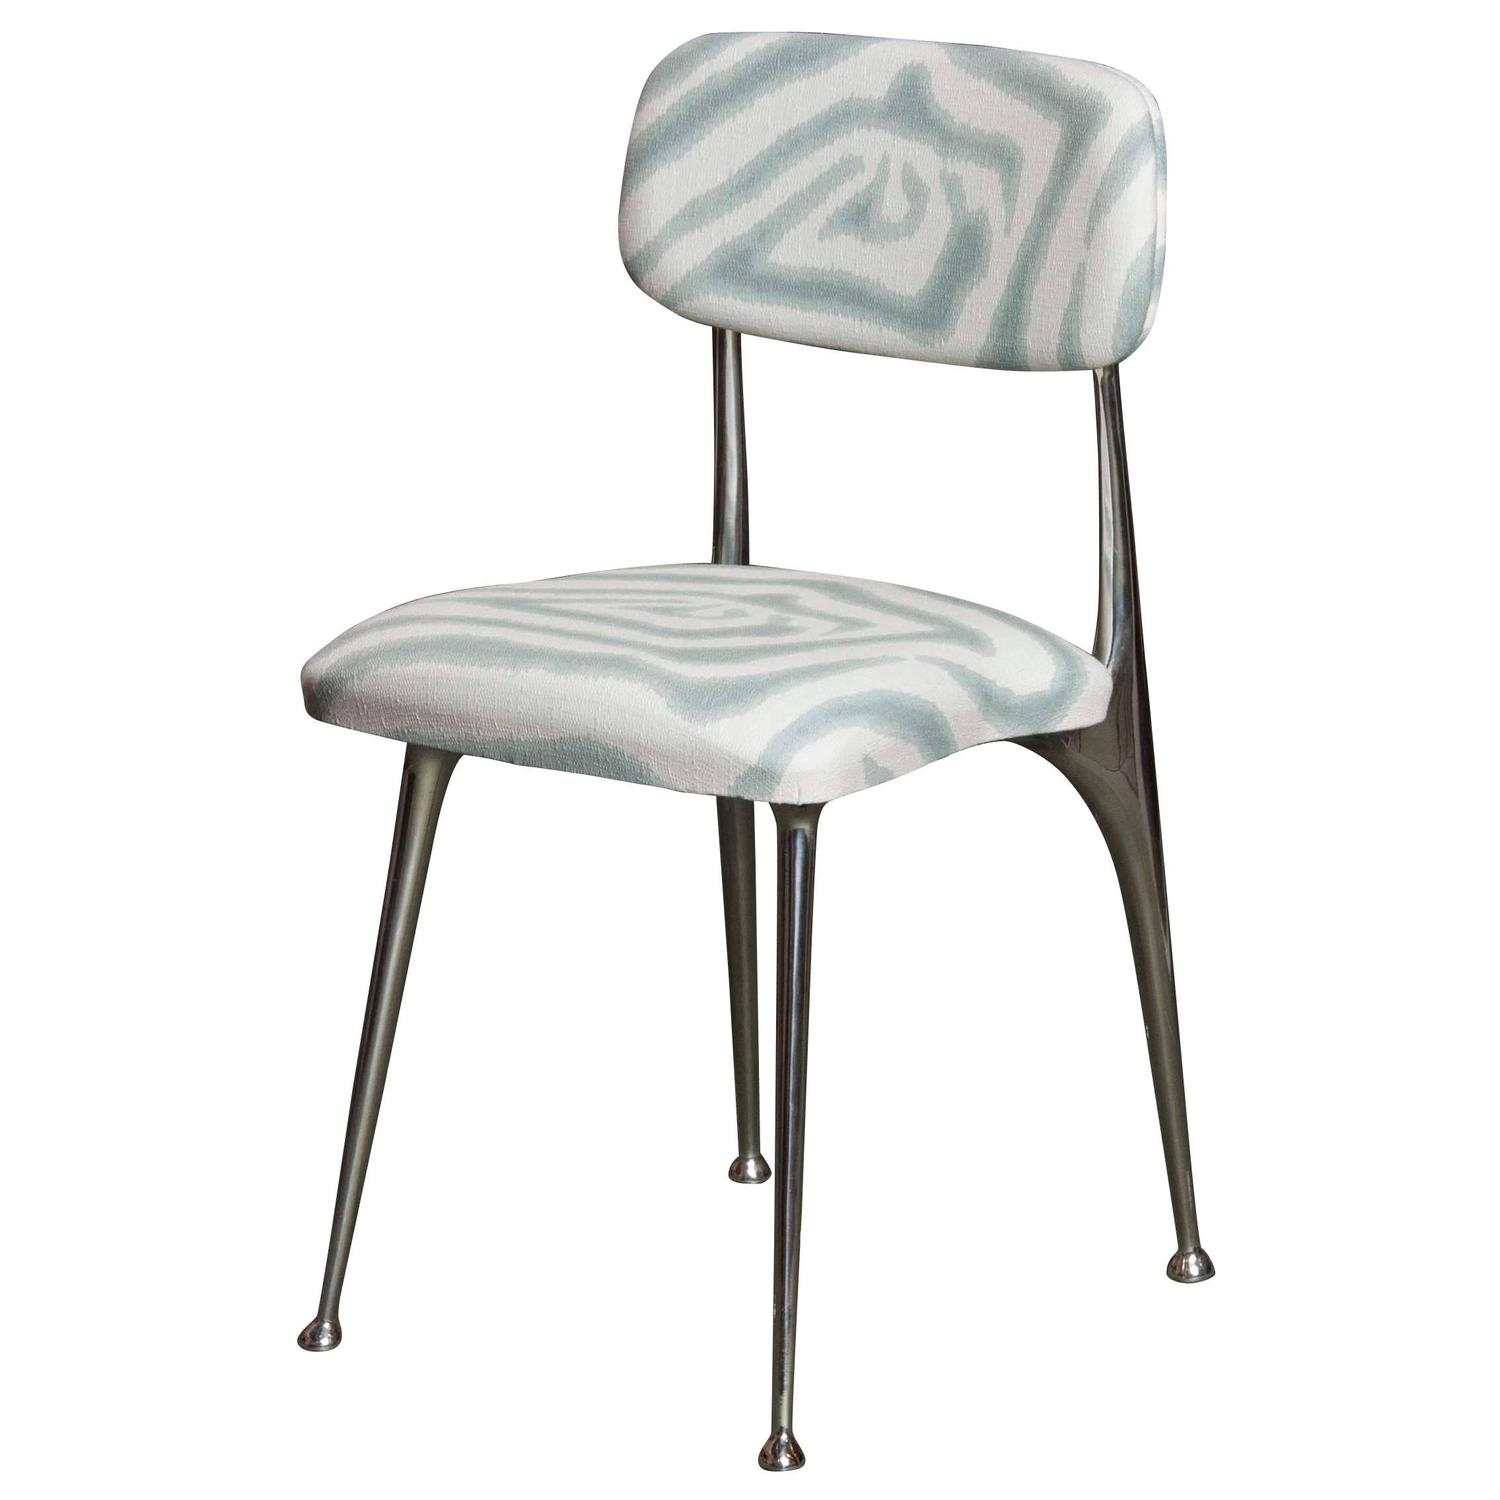 shelby williams chairs teal chair covers for wedding set of 8 polished aluminum dining by